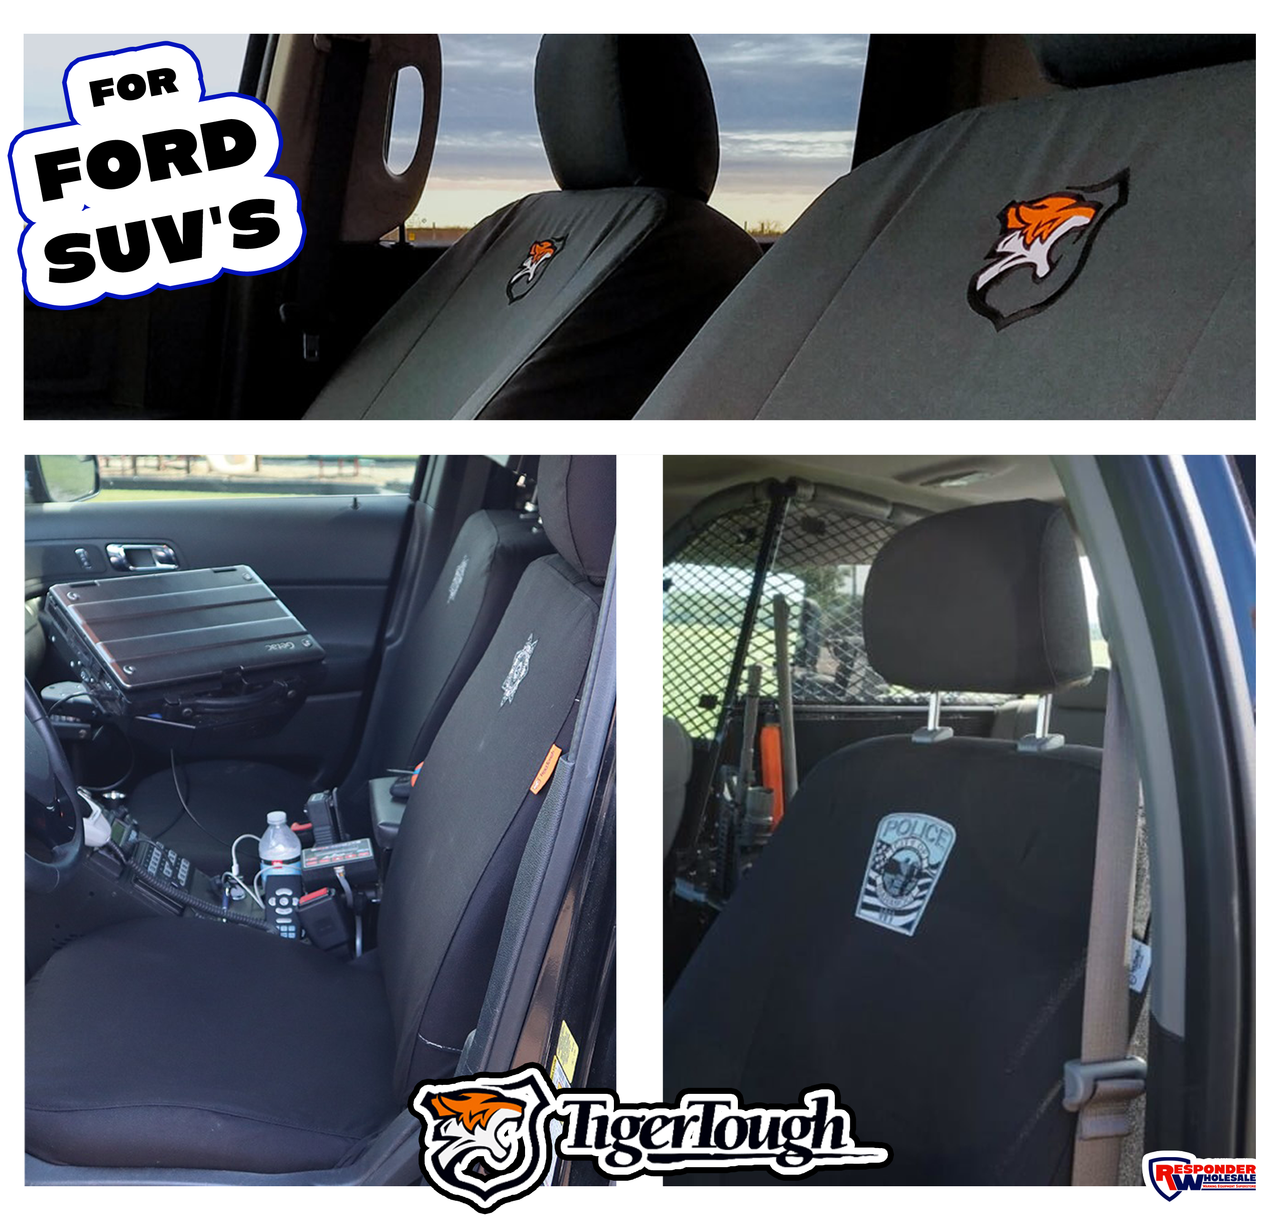 Tiger Tough, Tactical Seat Covers - FORD (SUV's)